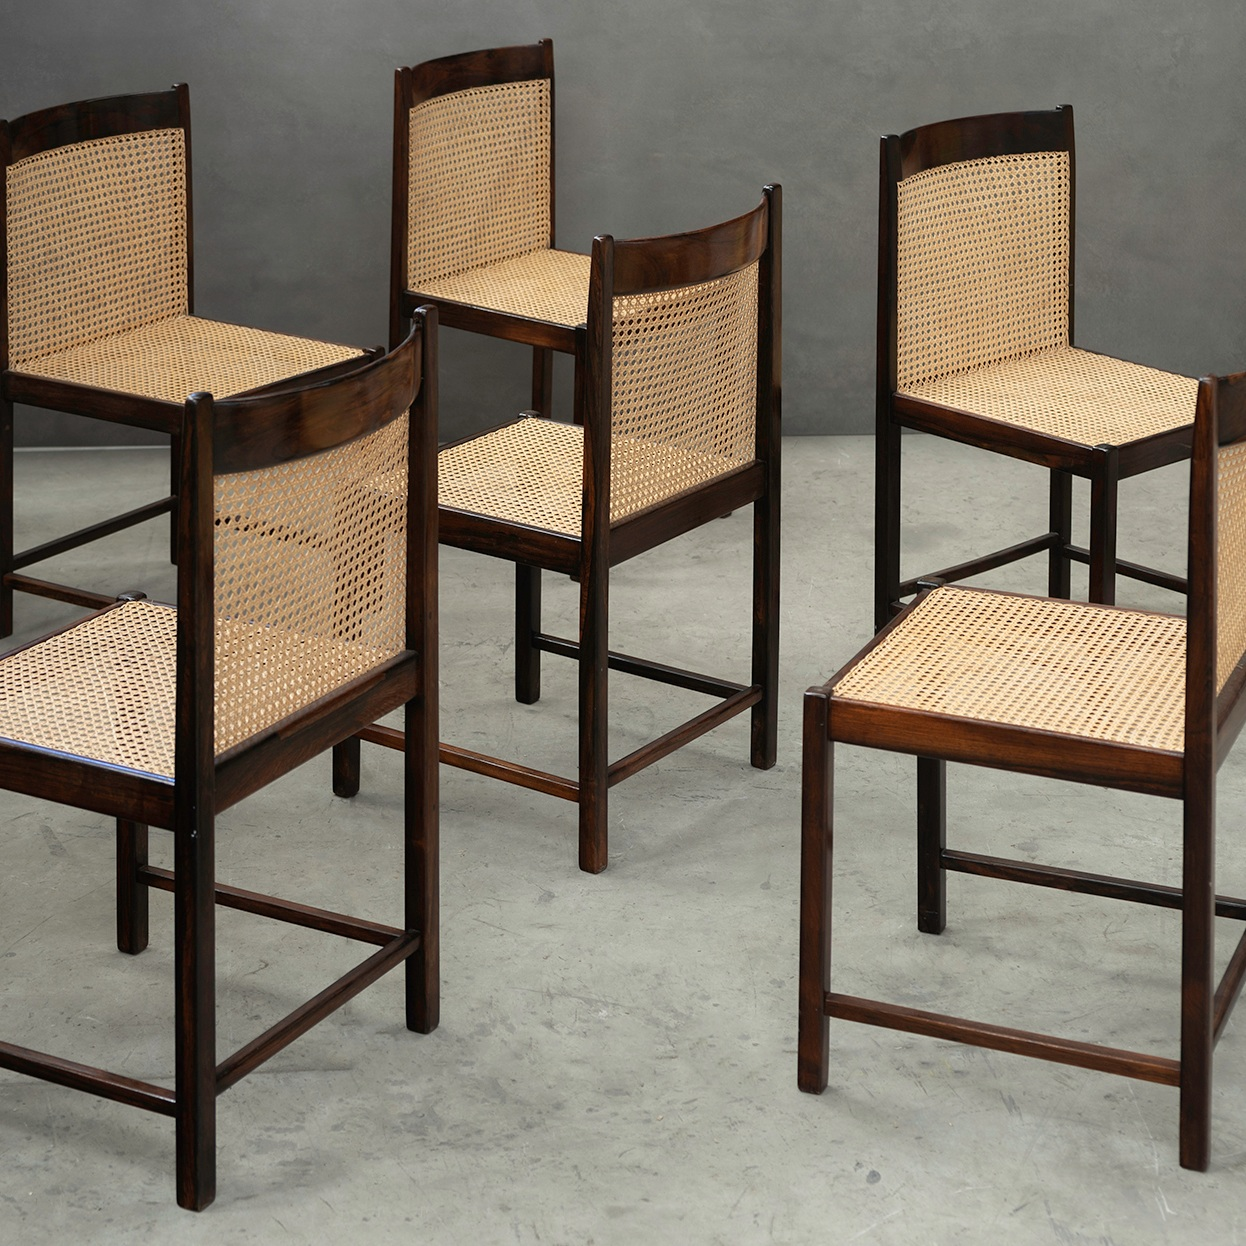 dining chairs | unknown designer -